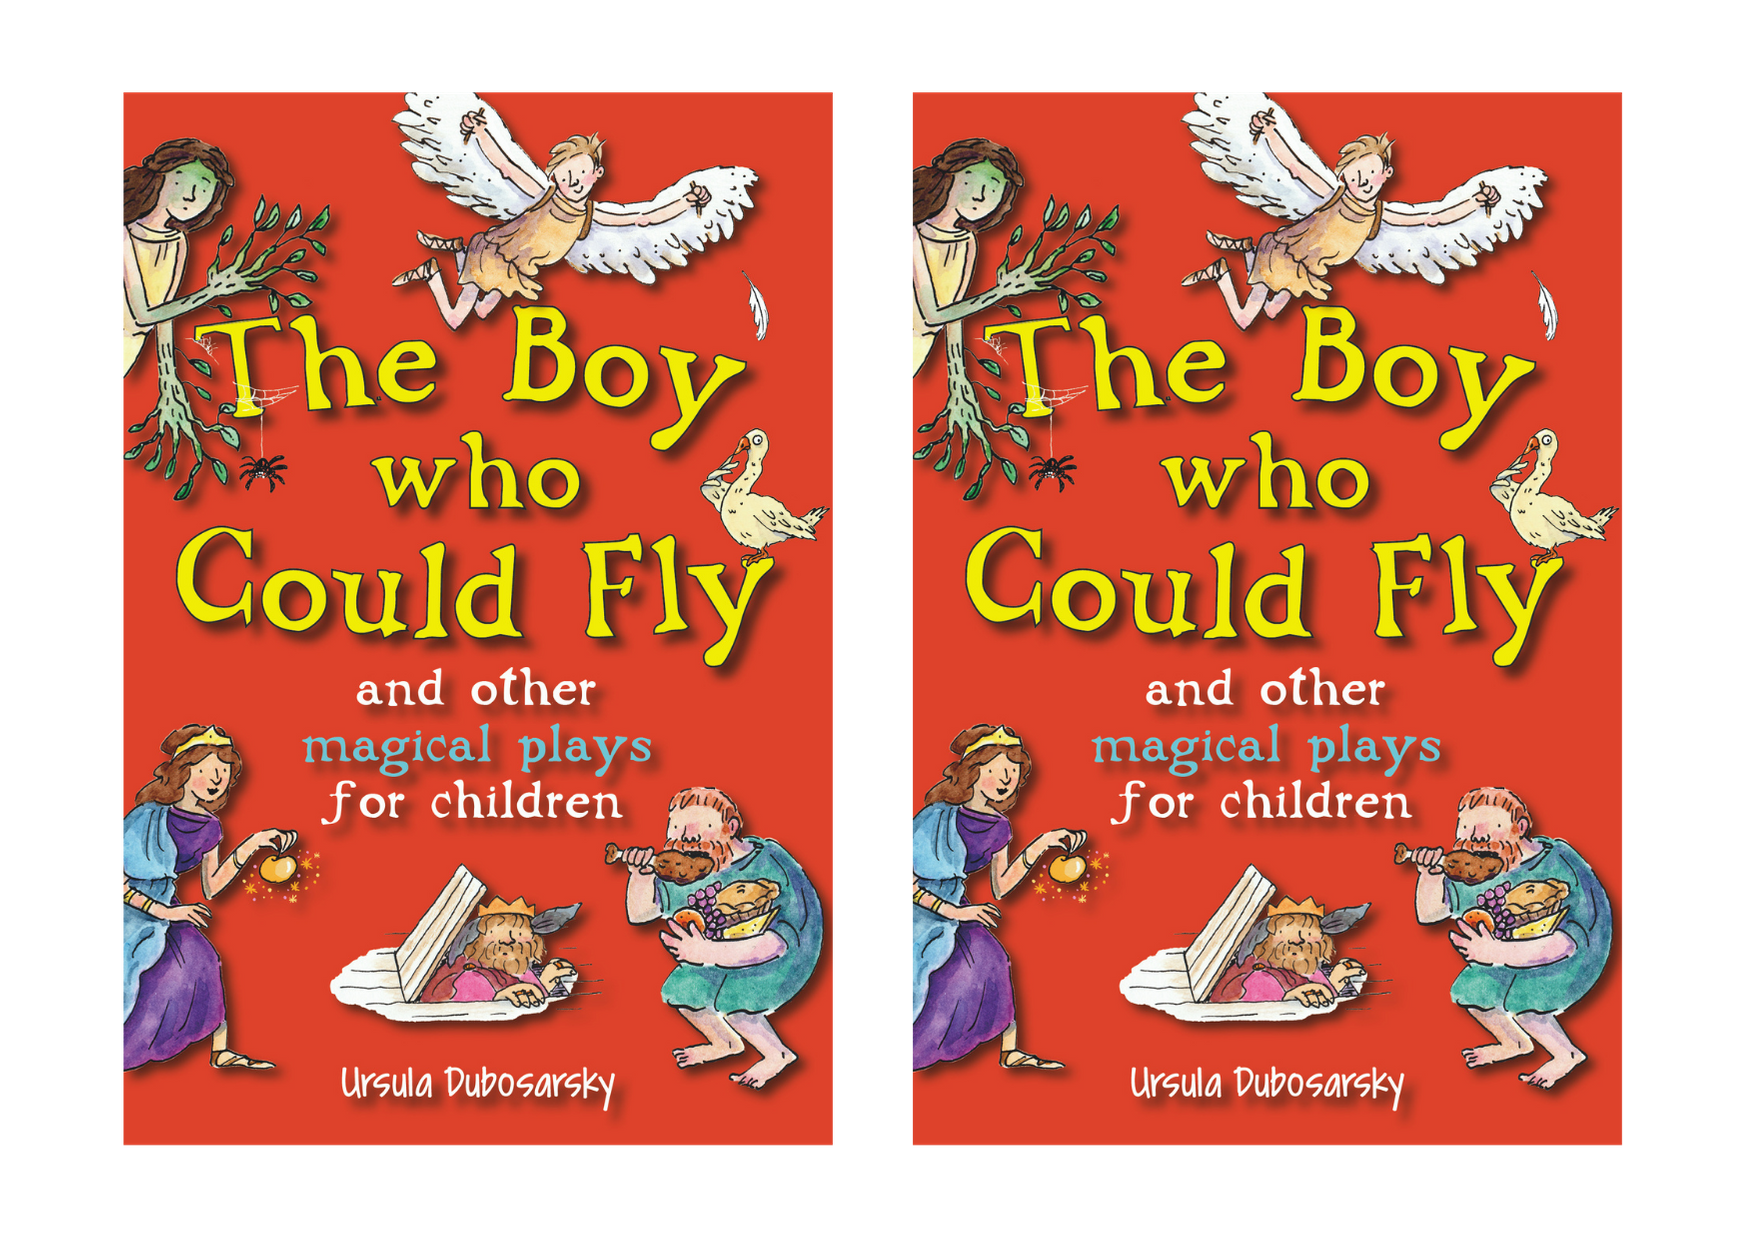 Christmas Press - The Boy who Could Fly